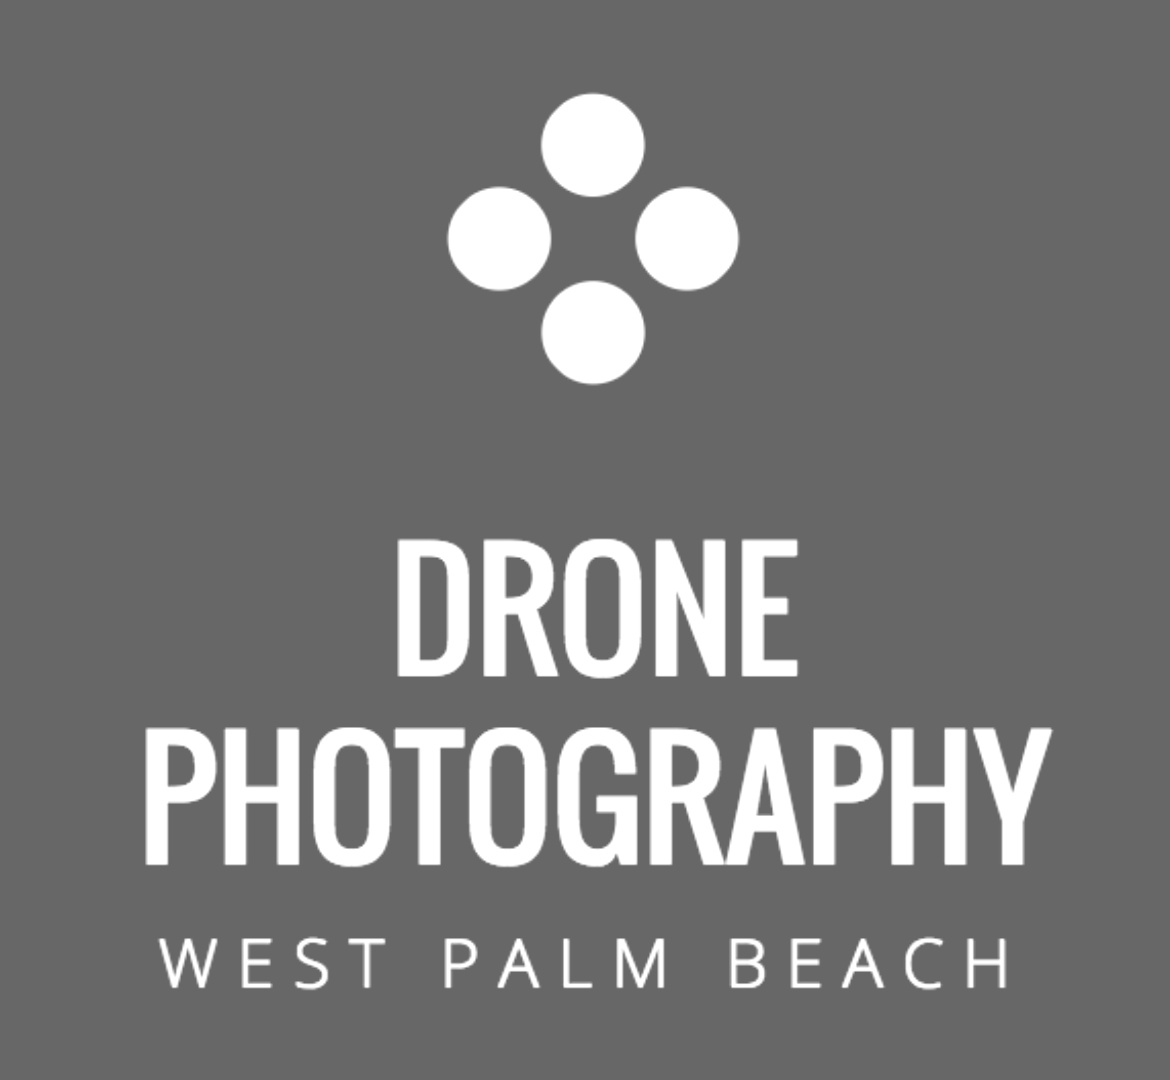 drone photography west palm beach